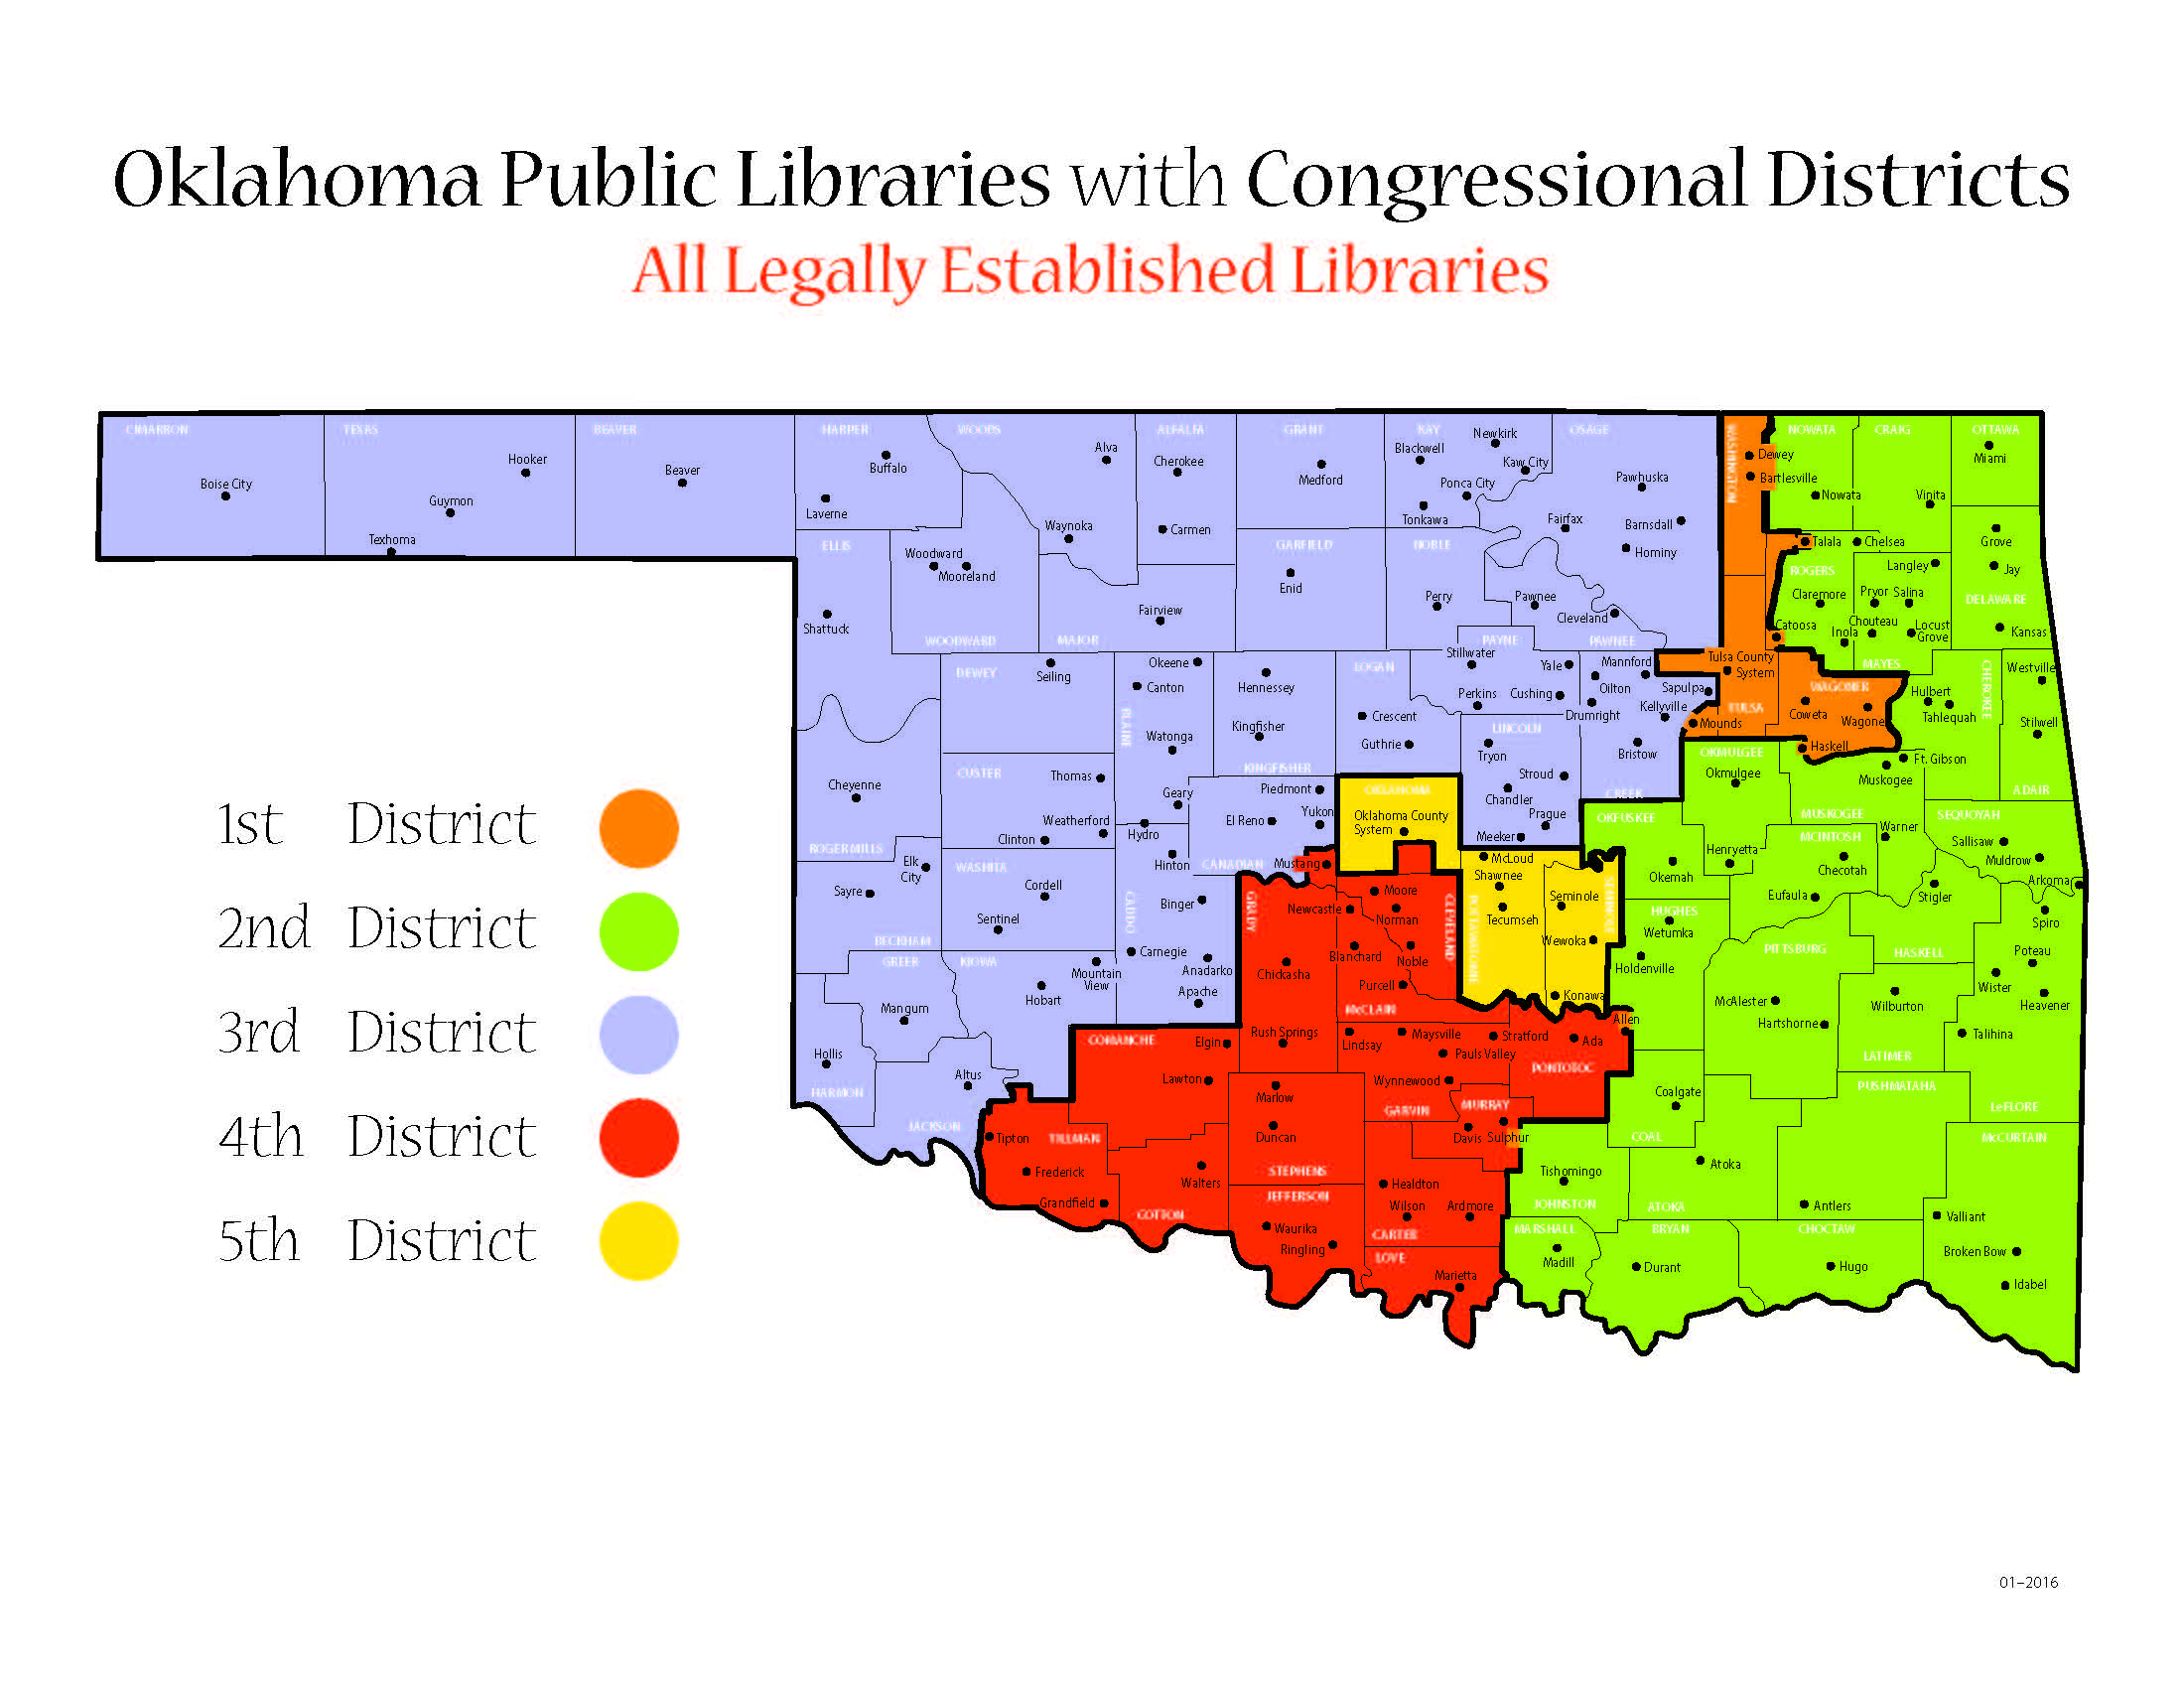 Oklahoma Public Libraries And Systems Maps OK Dept Of Libraries - Rural development loan map oklahoma